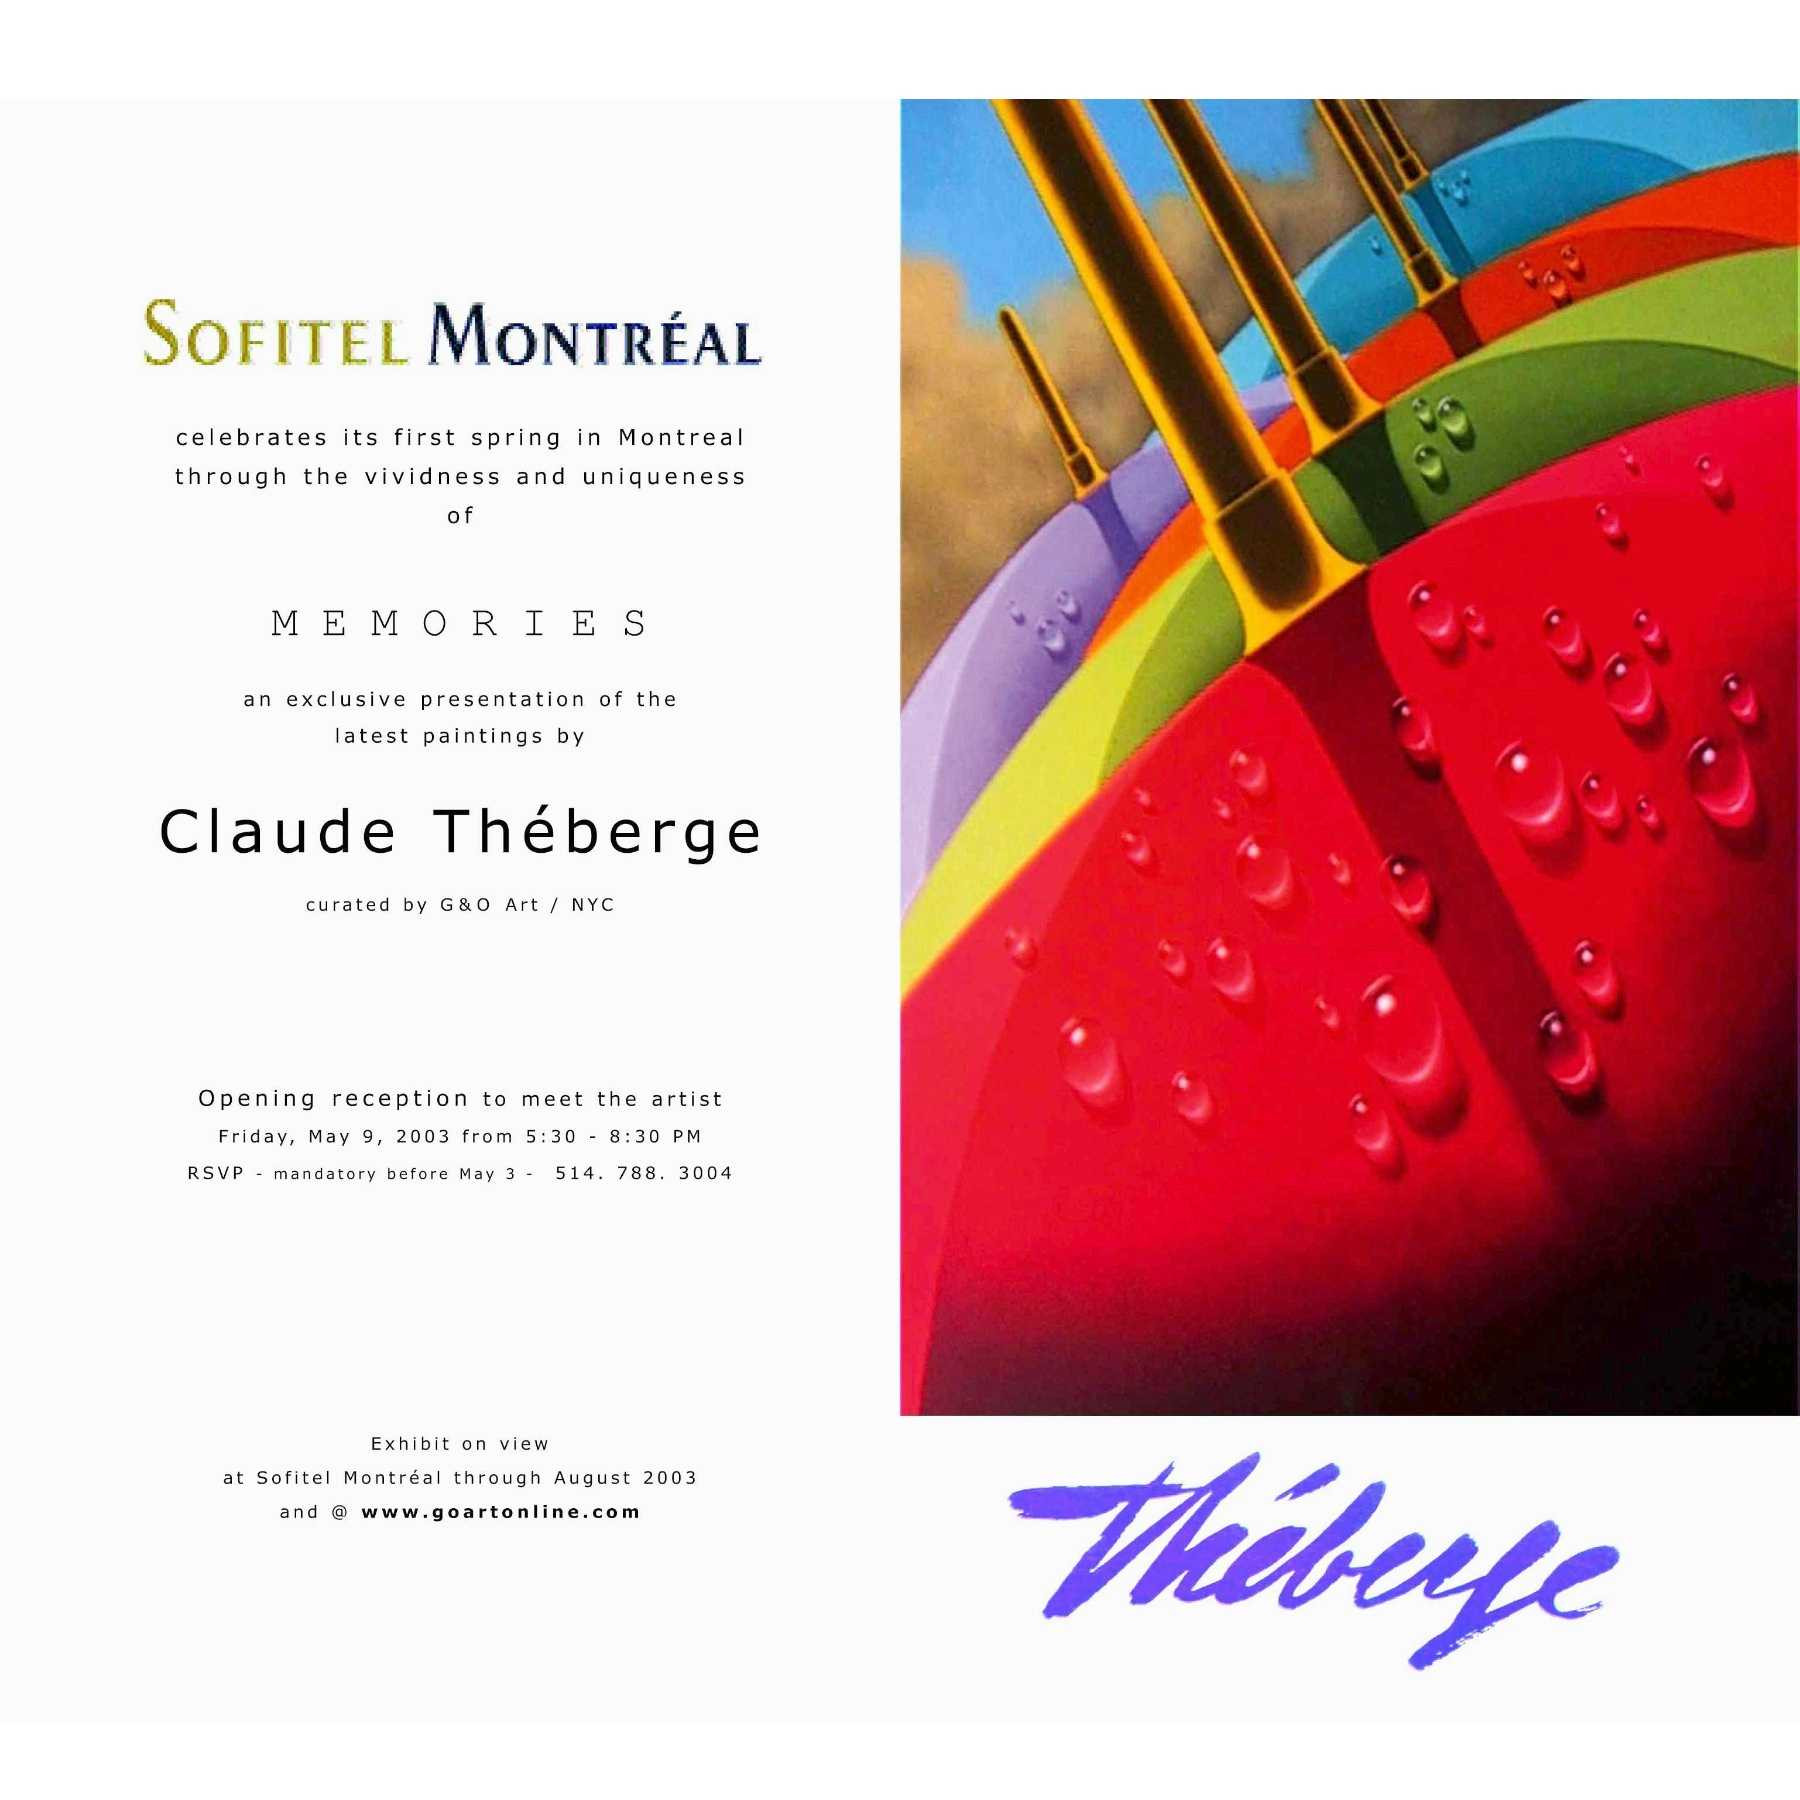 THEBERGE at Sofitel Montreal